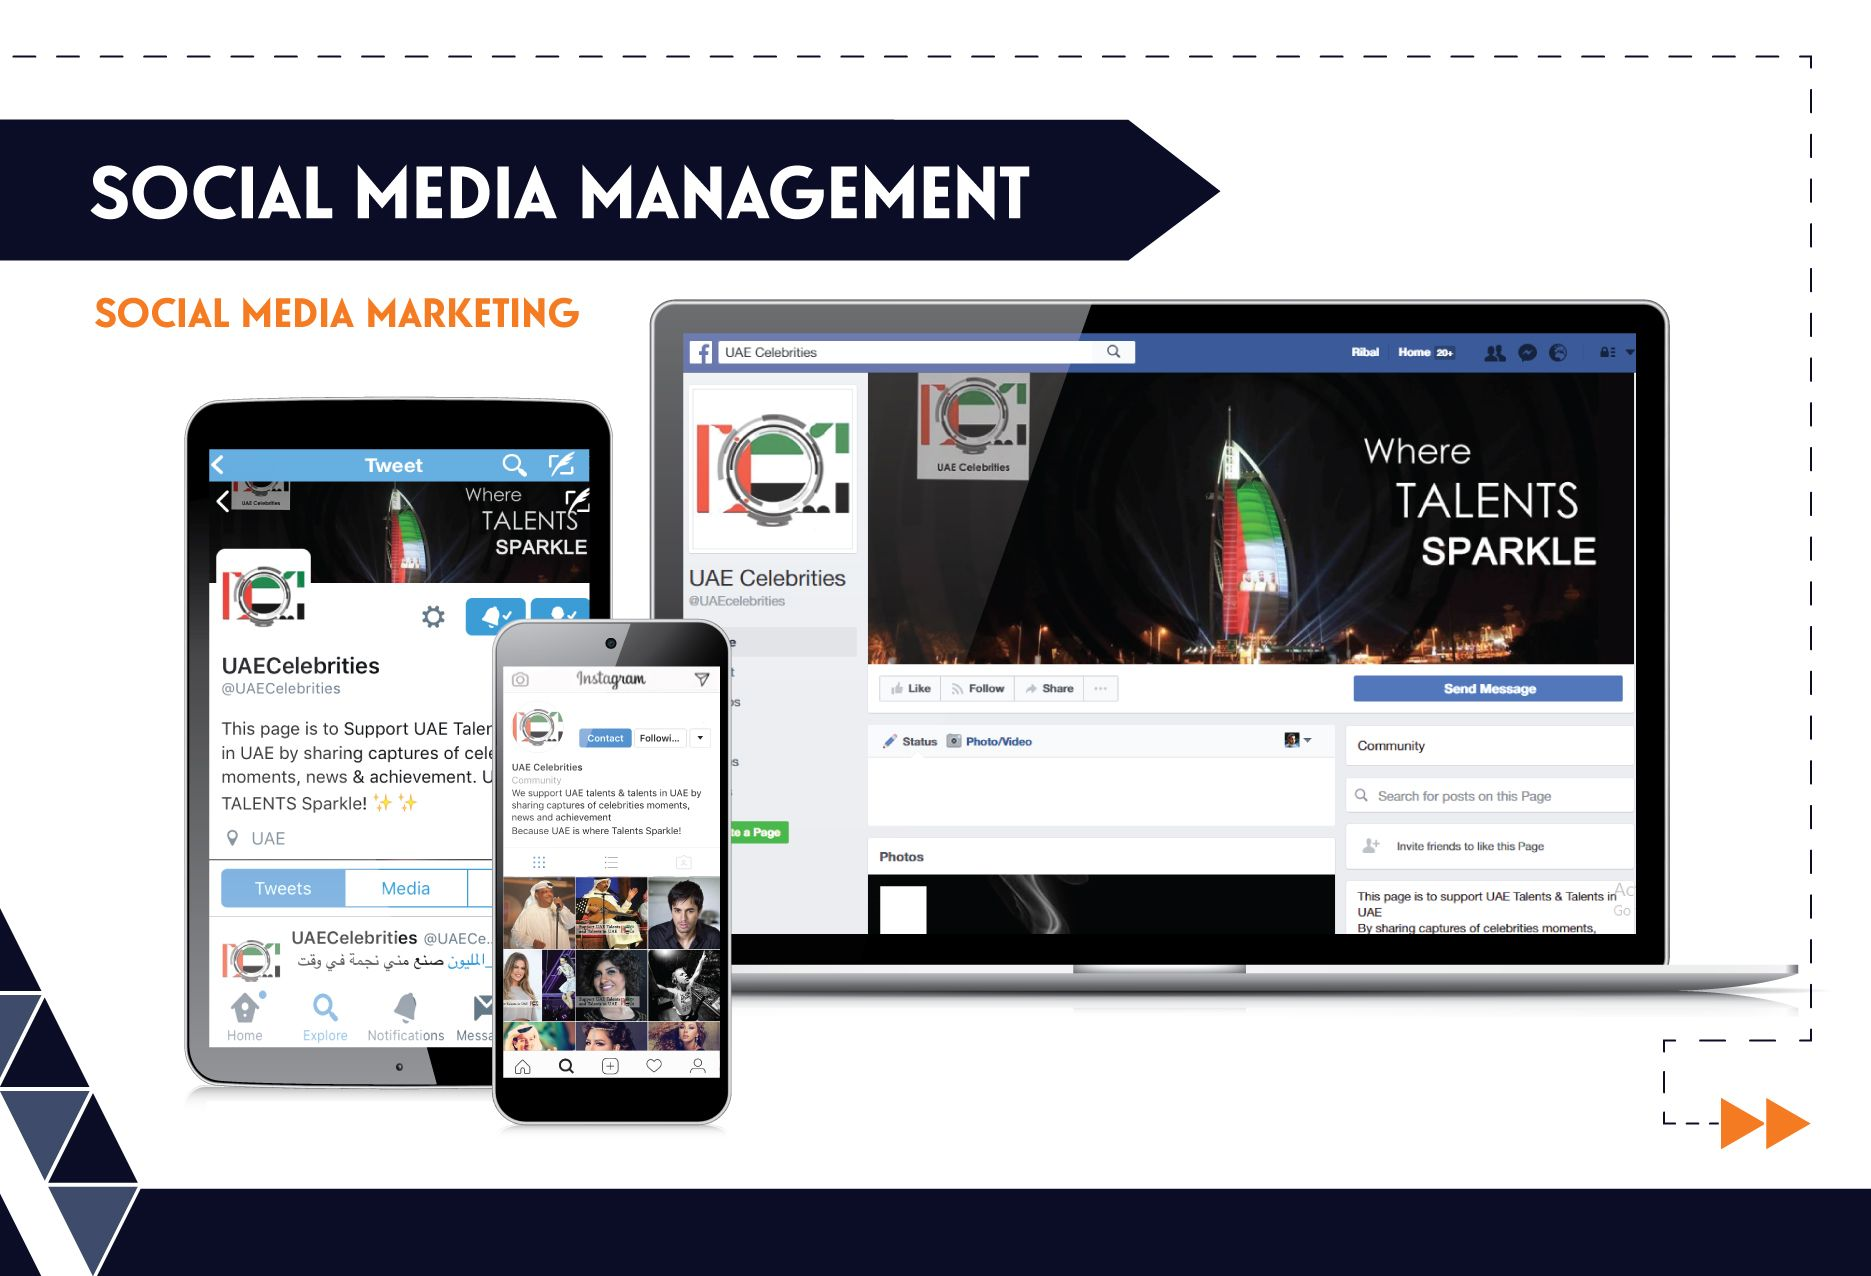 Social Media Management - UAE Celeb.